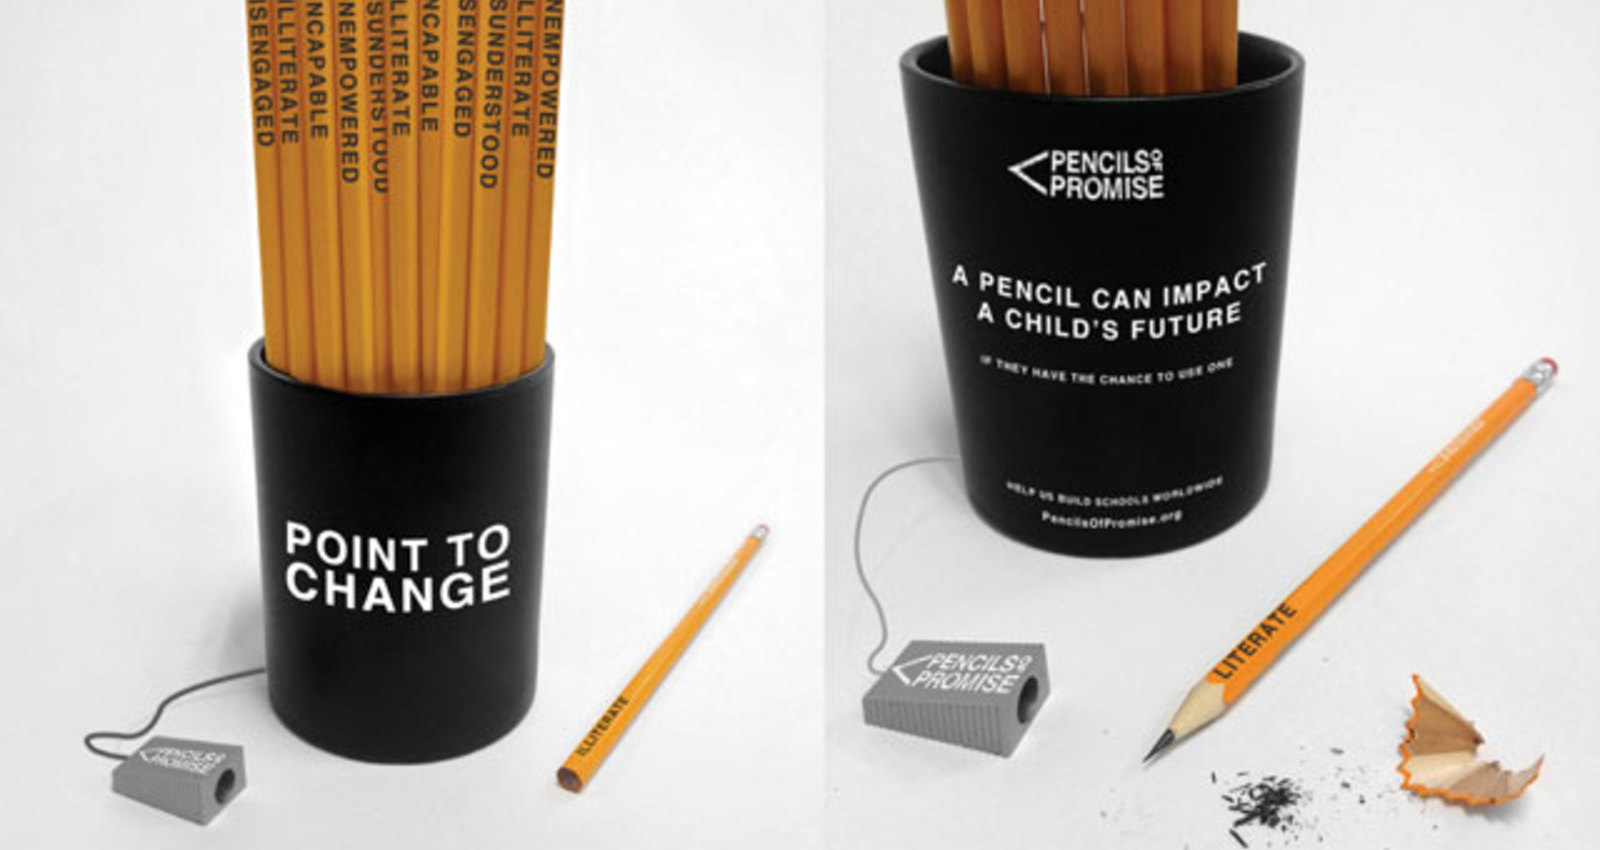 Point to Change Pencil Cup